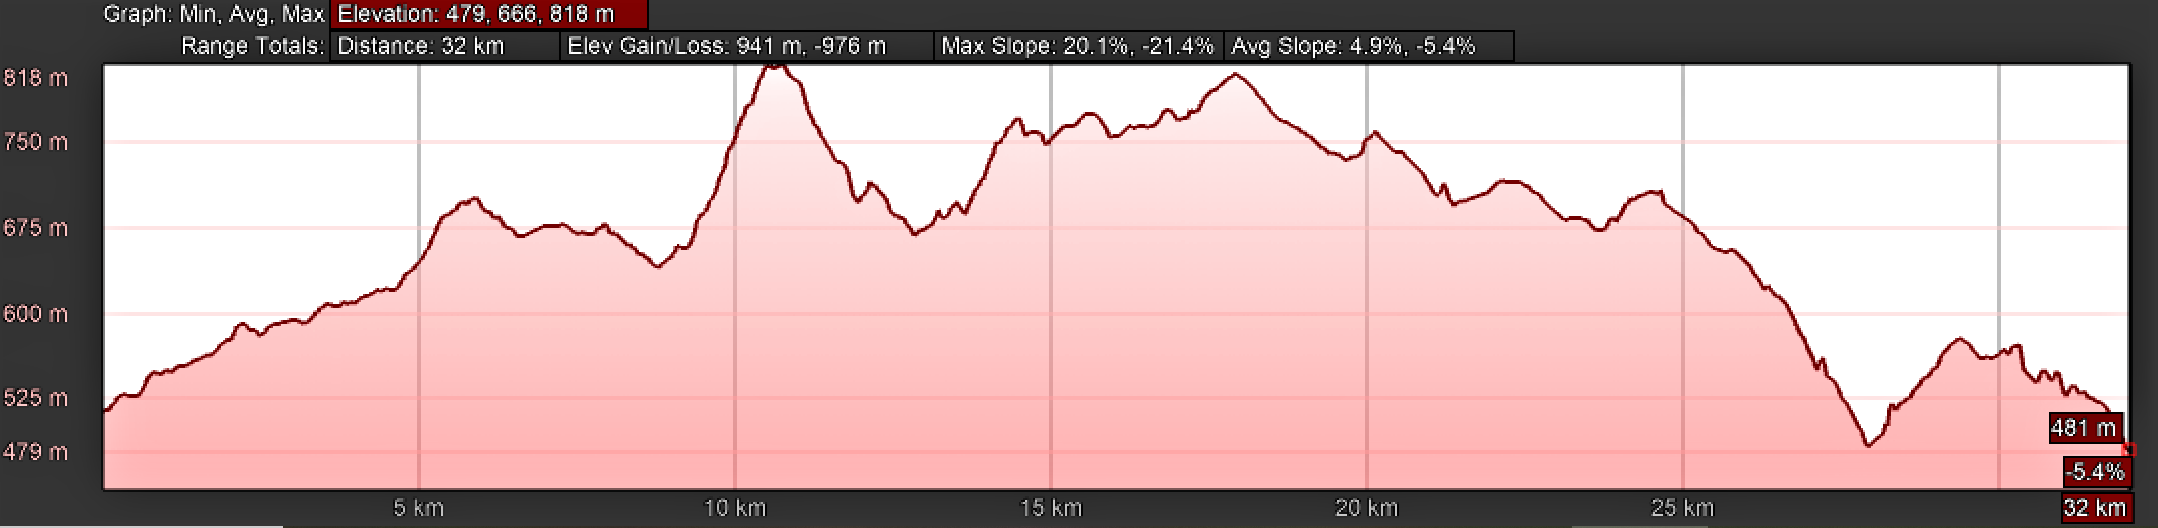 Elevation Profile, Camino Sanabrés, Cea to Estación de Lalín via the Mosteiro Route